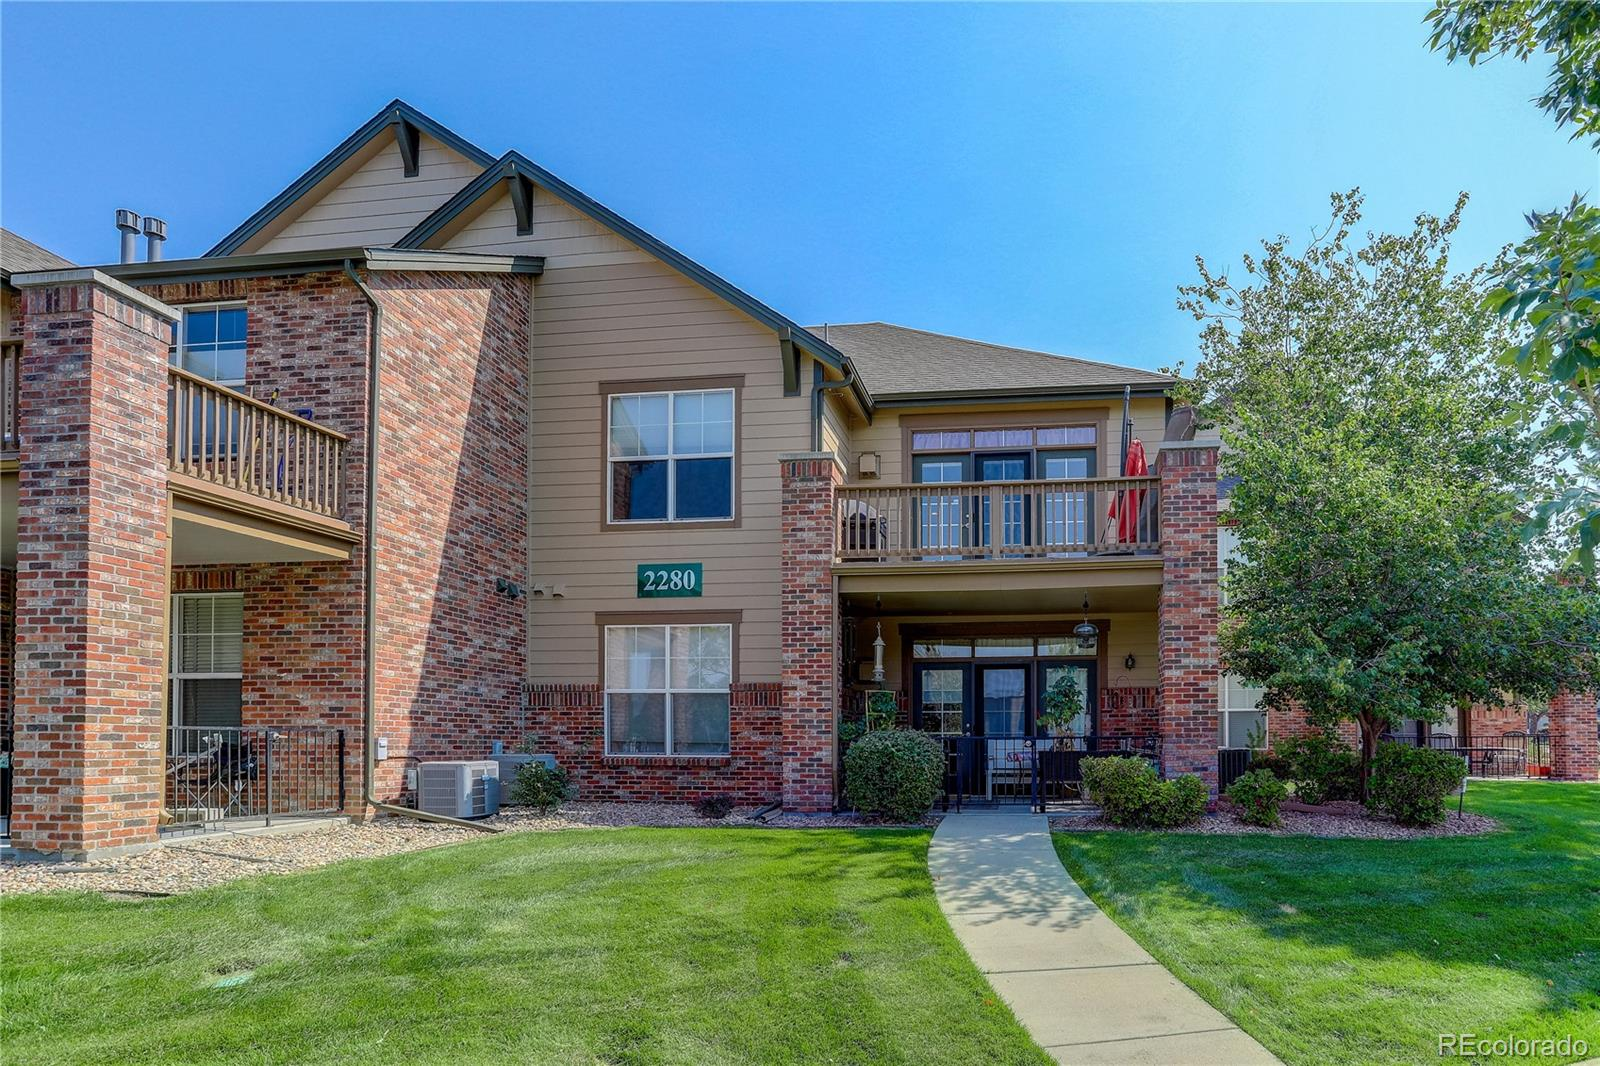 2280 S Vaughn Way Unit 202, Aurora CO 80014